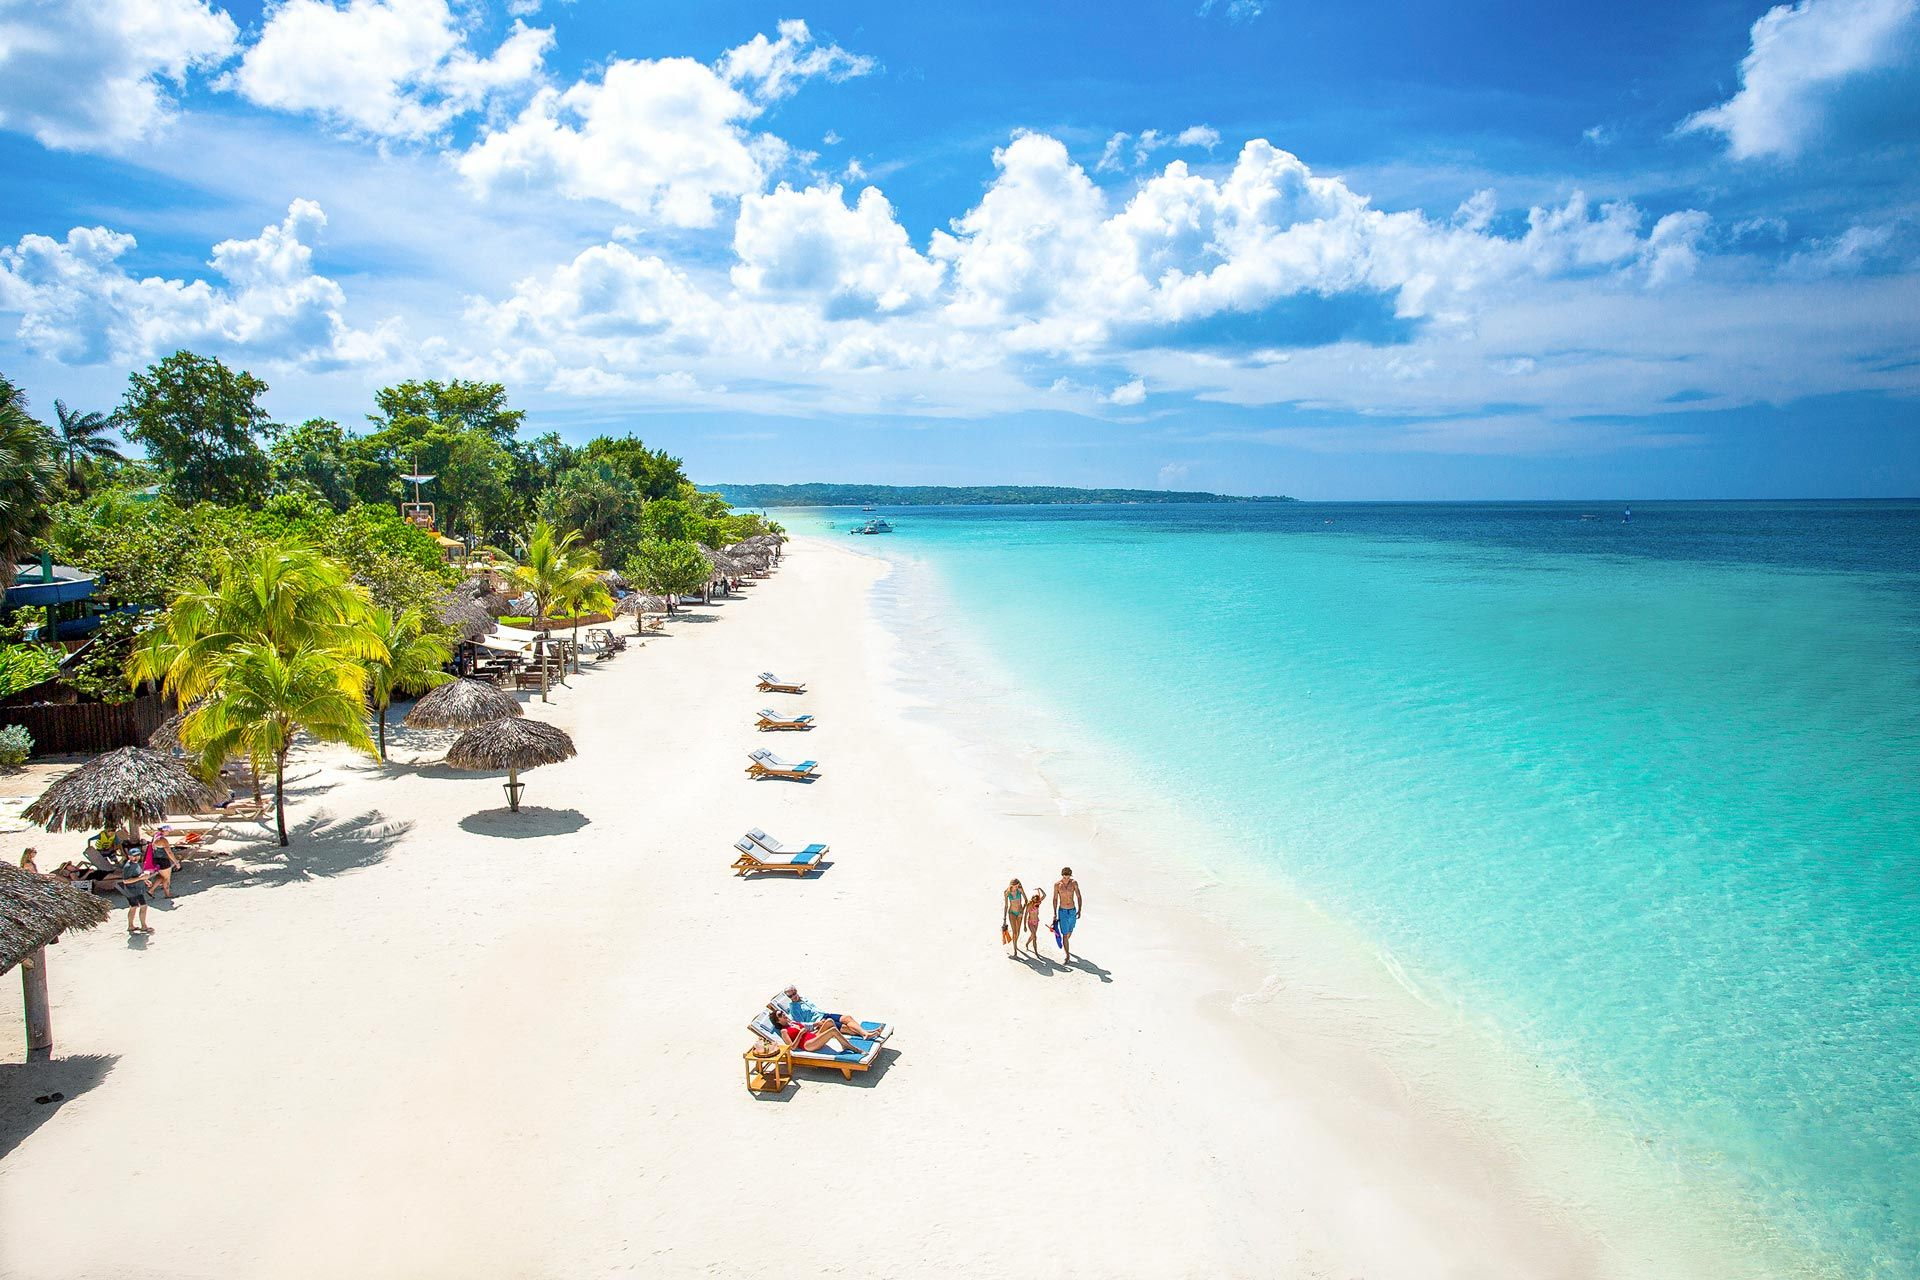 Negril all-inclusive beach resort